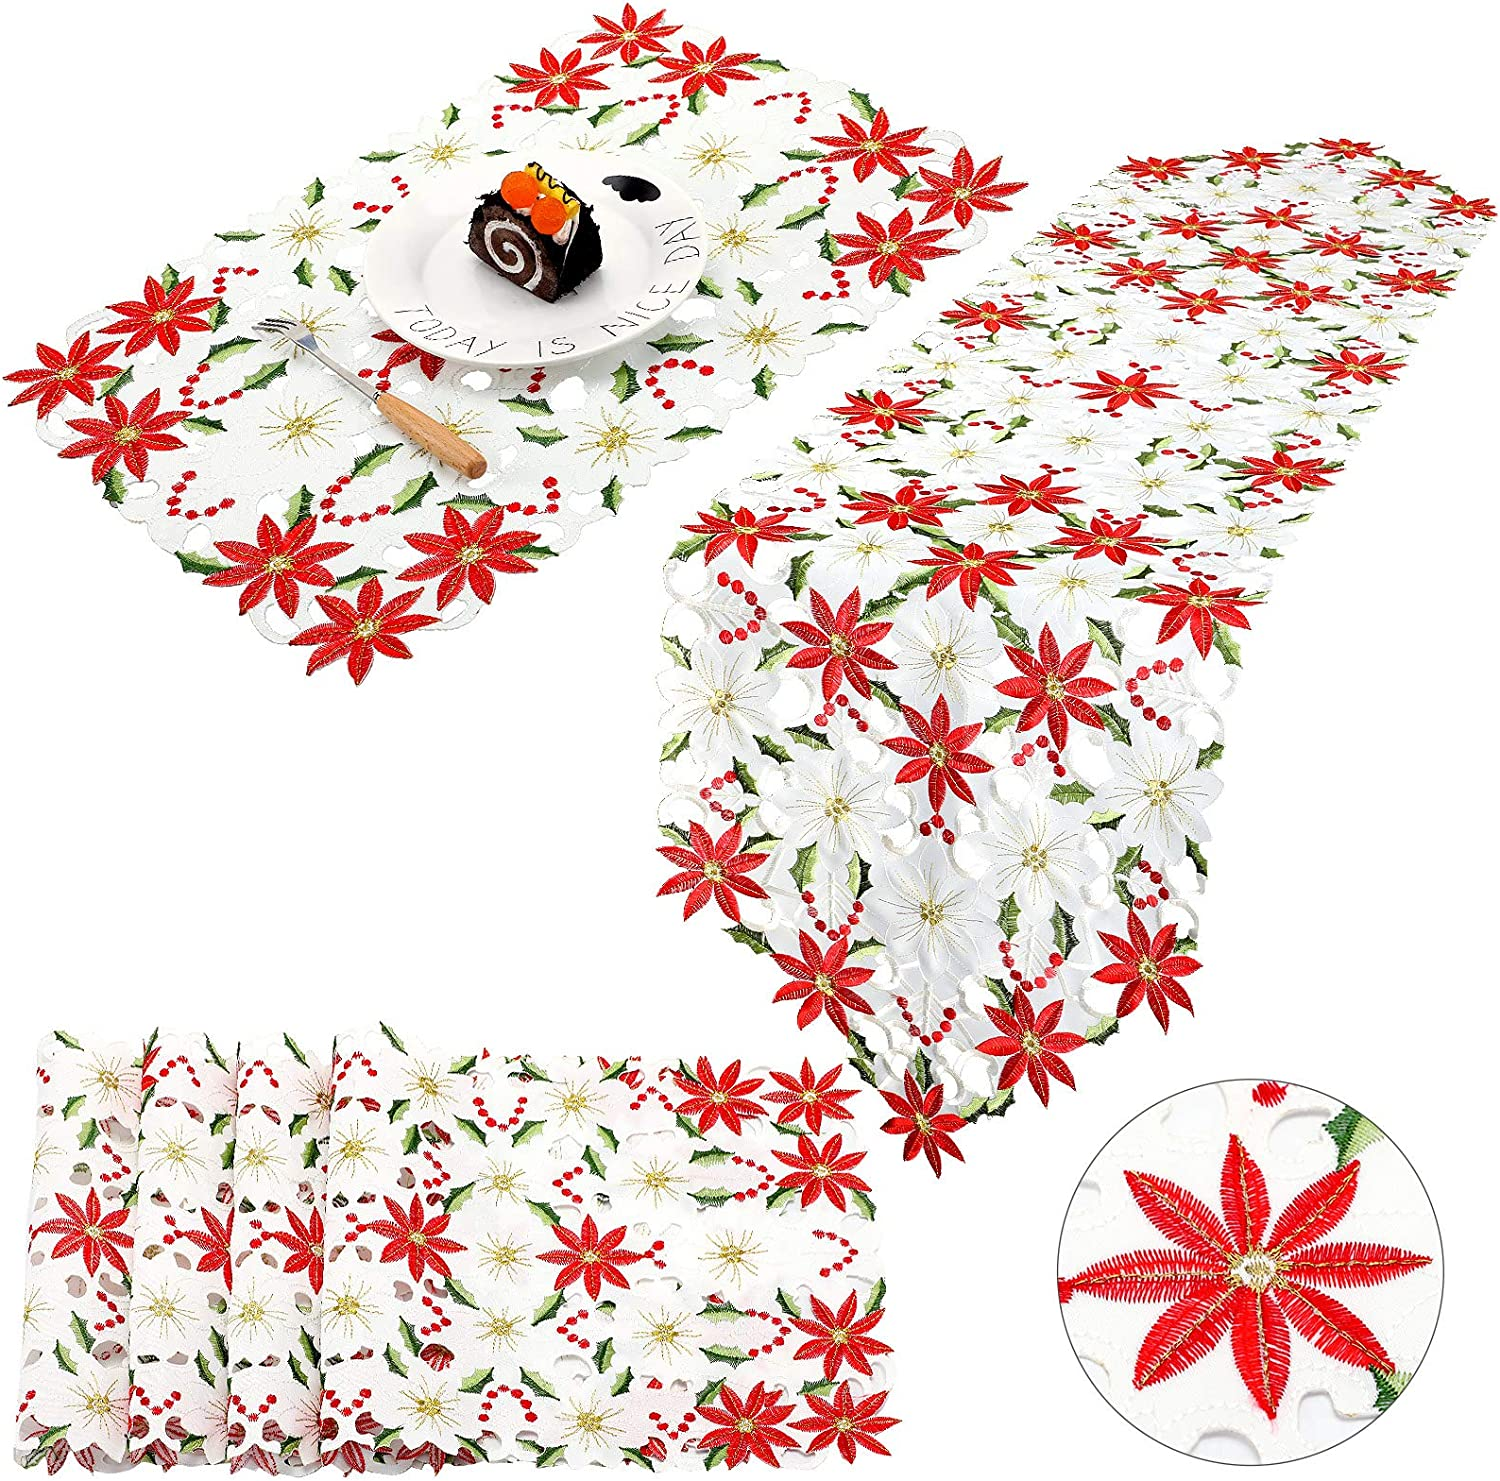 Embroidery Table Runner Placemat Luxury Holly Poinsettia Table Runner for Xmas